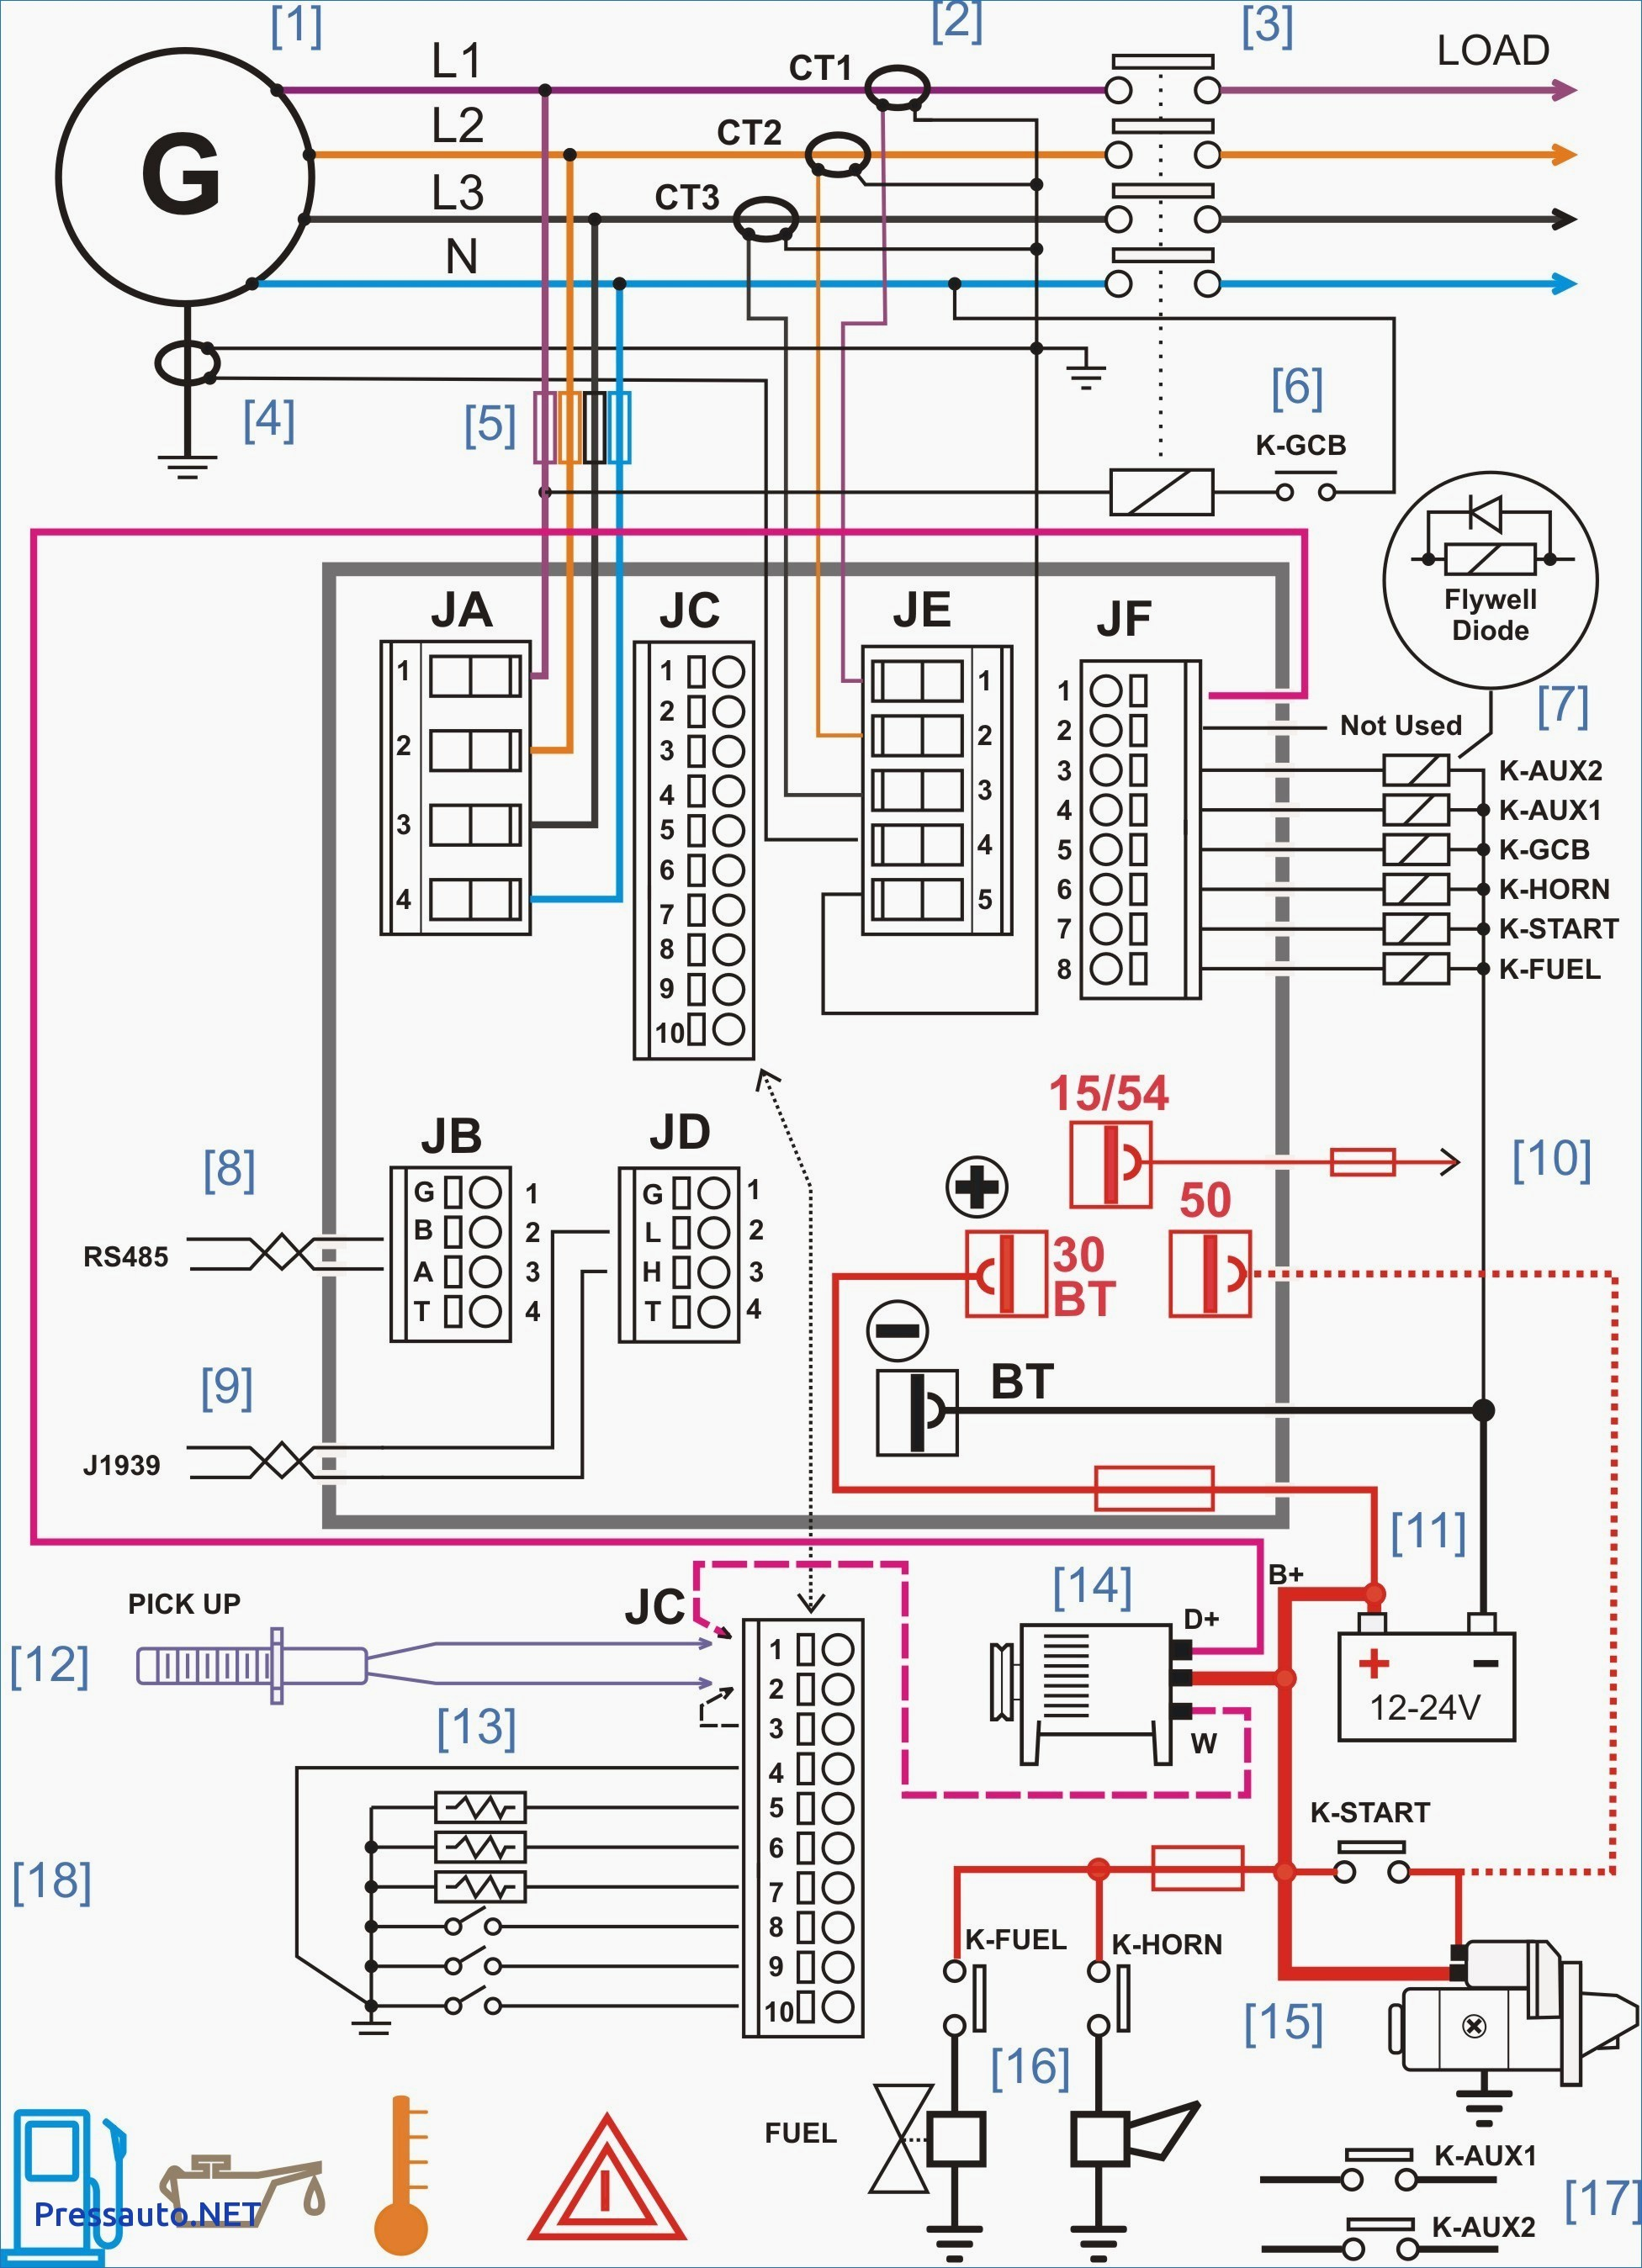 Reliance Generator Transfer Switch Wiring Diagram Stunning Portable ...